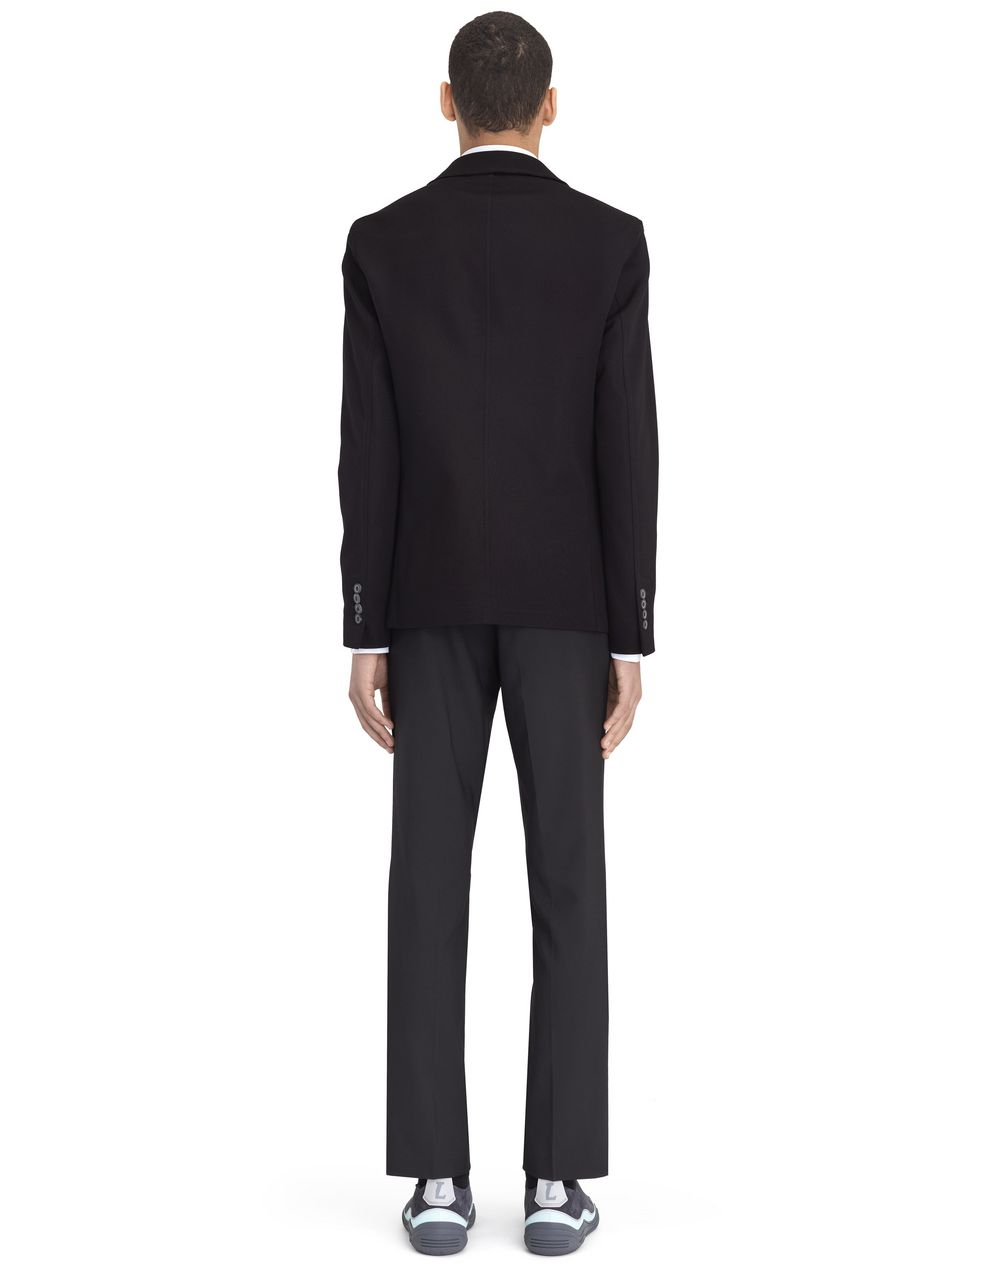 BLACK DECONSTRUCTED JACKET - Lanvin